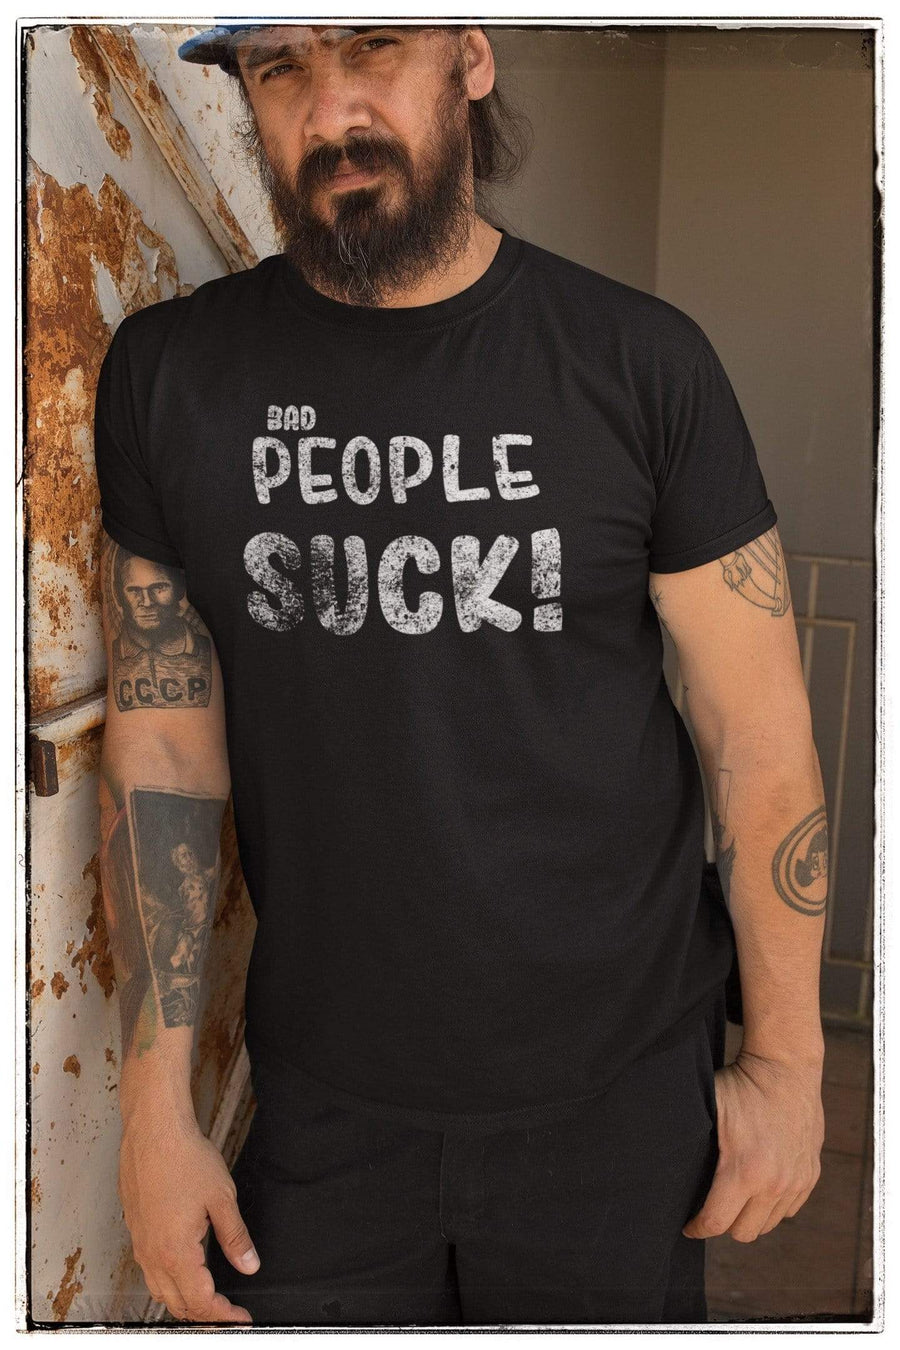 Bad People Suck Short-Sleeve Shirt for Men & Women (Adult)